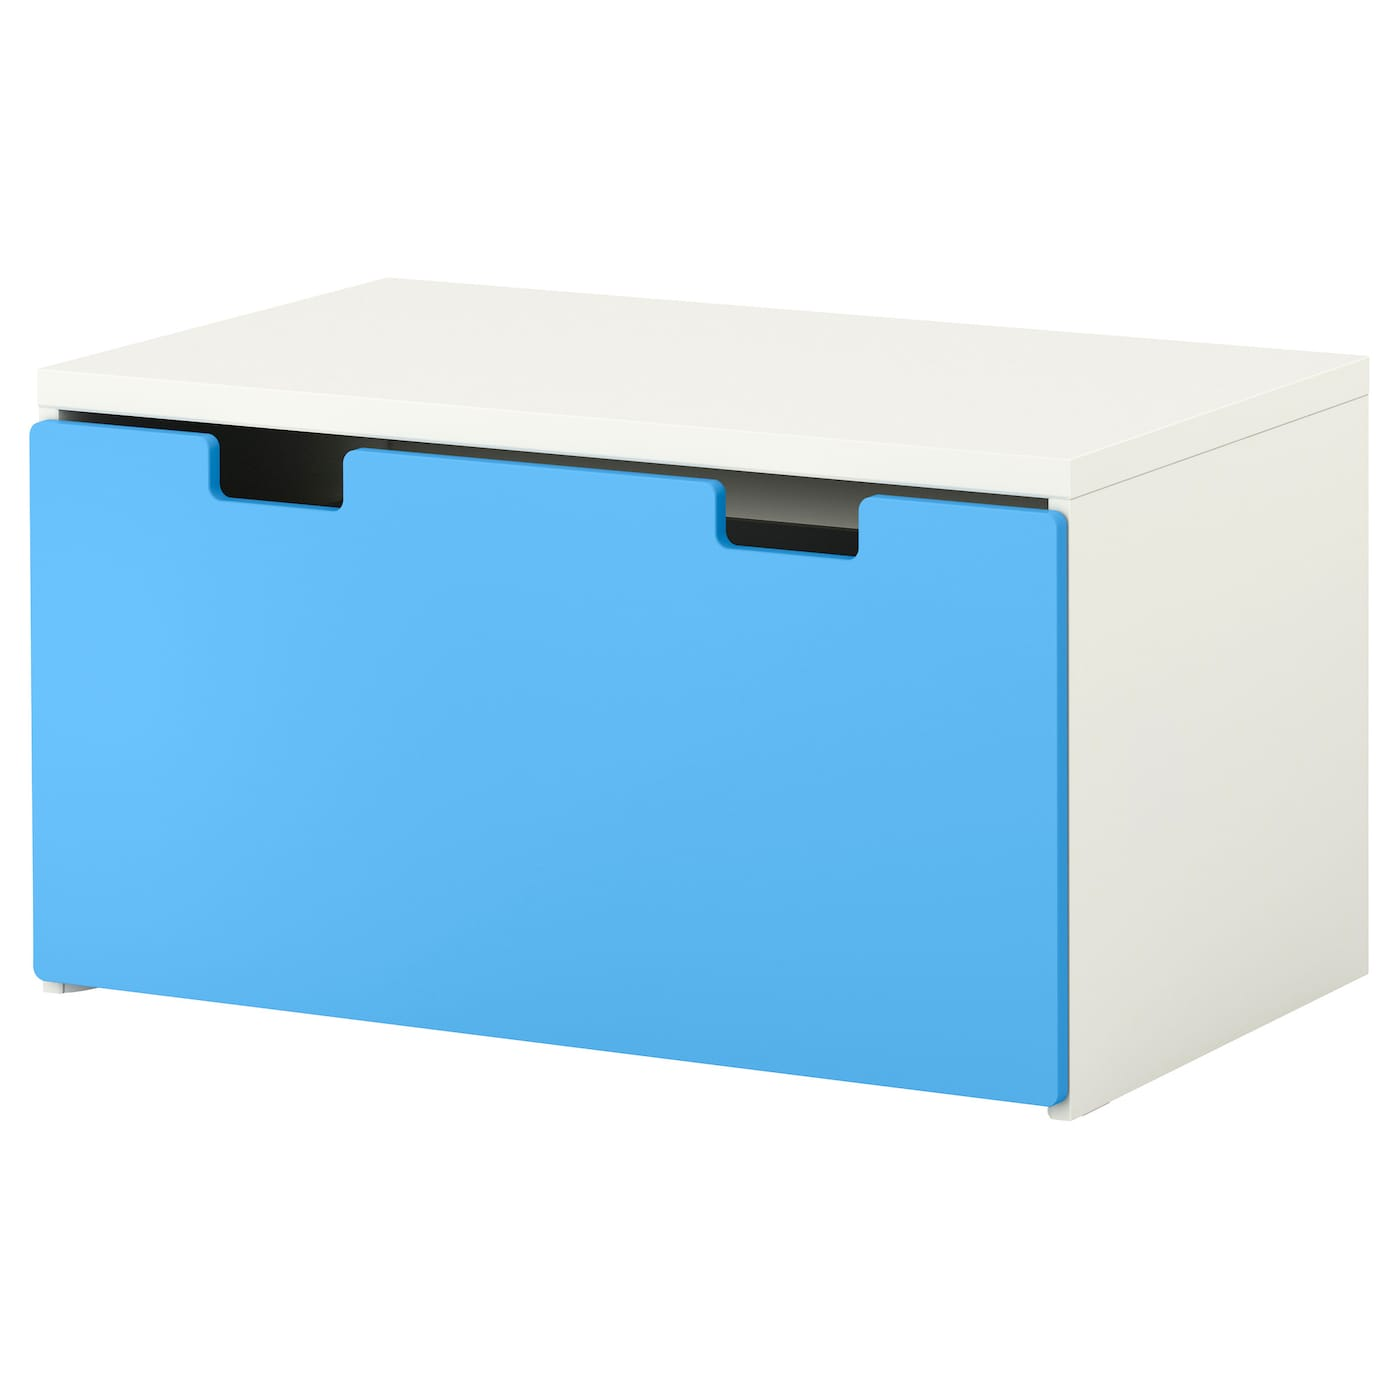 stuva bank met bergruimte wit blauw 90x50x50 cm ikea. Black Bedroom Furniture Sets. Home Design Ideas